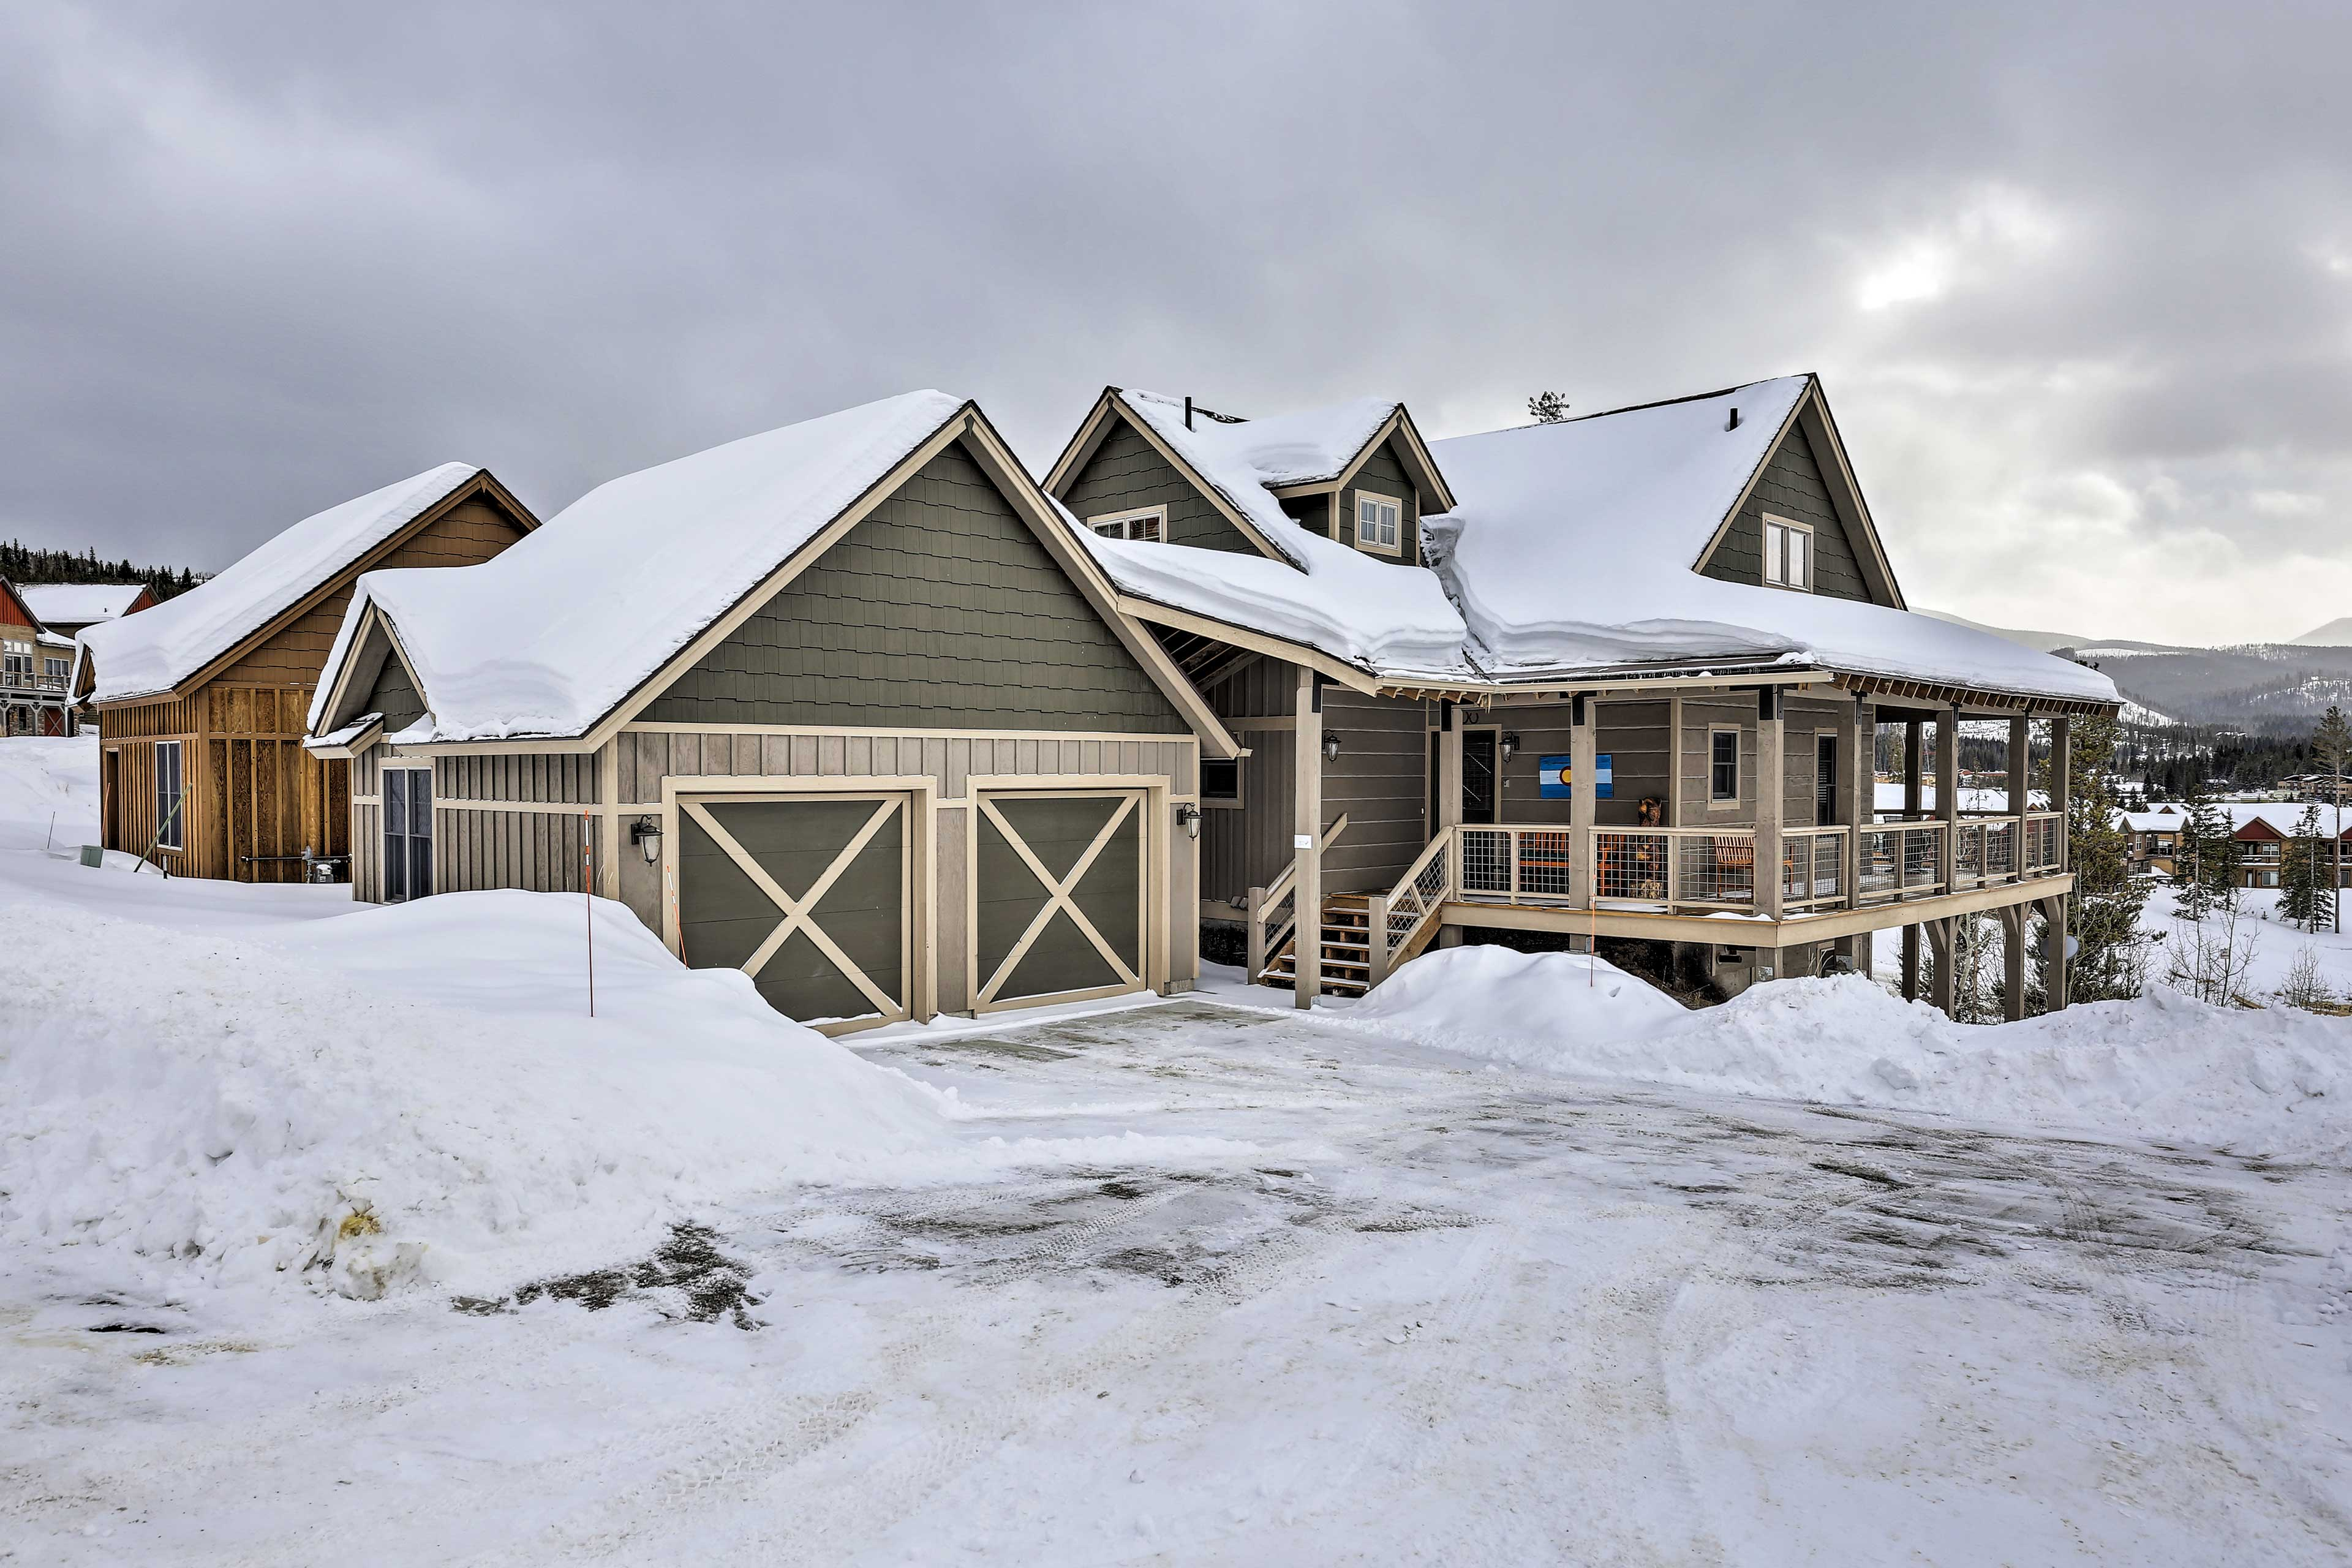 An alluring Rocky Mountain retreat awaits you at this vacation rental home!